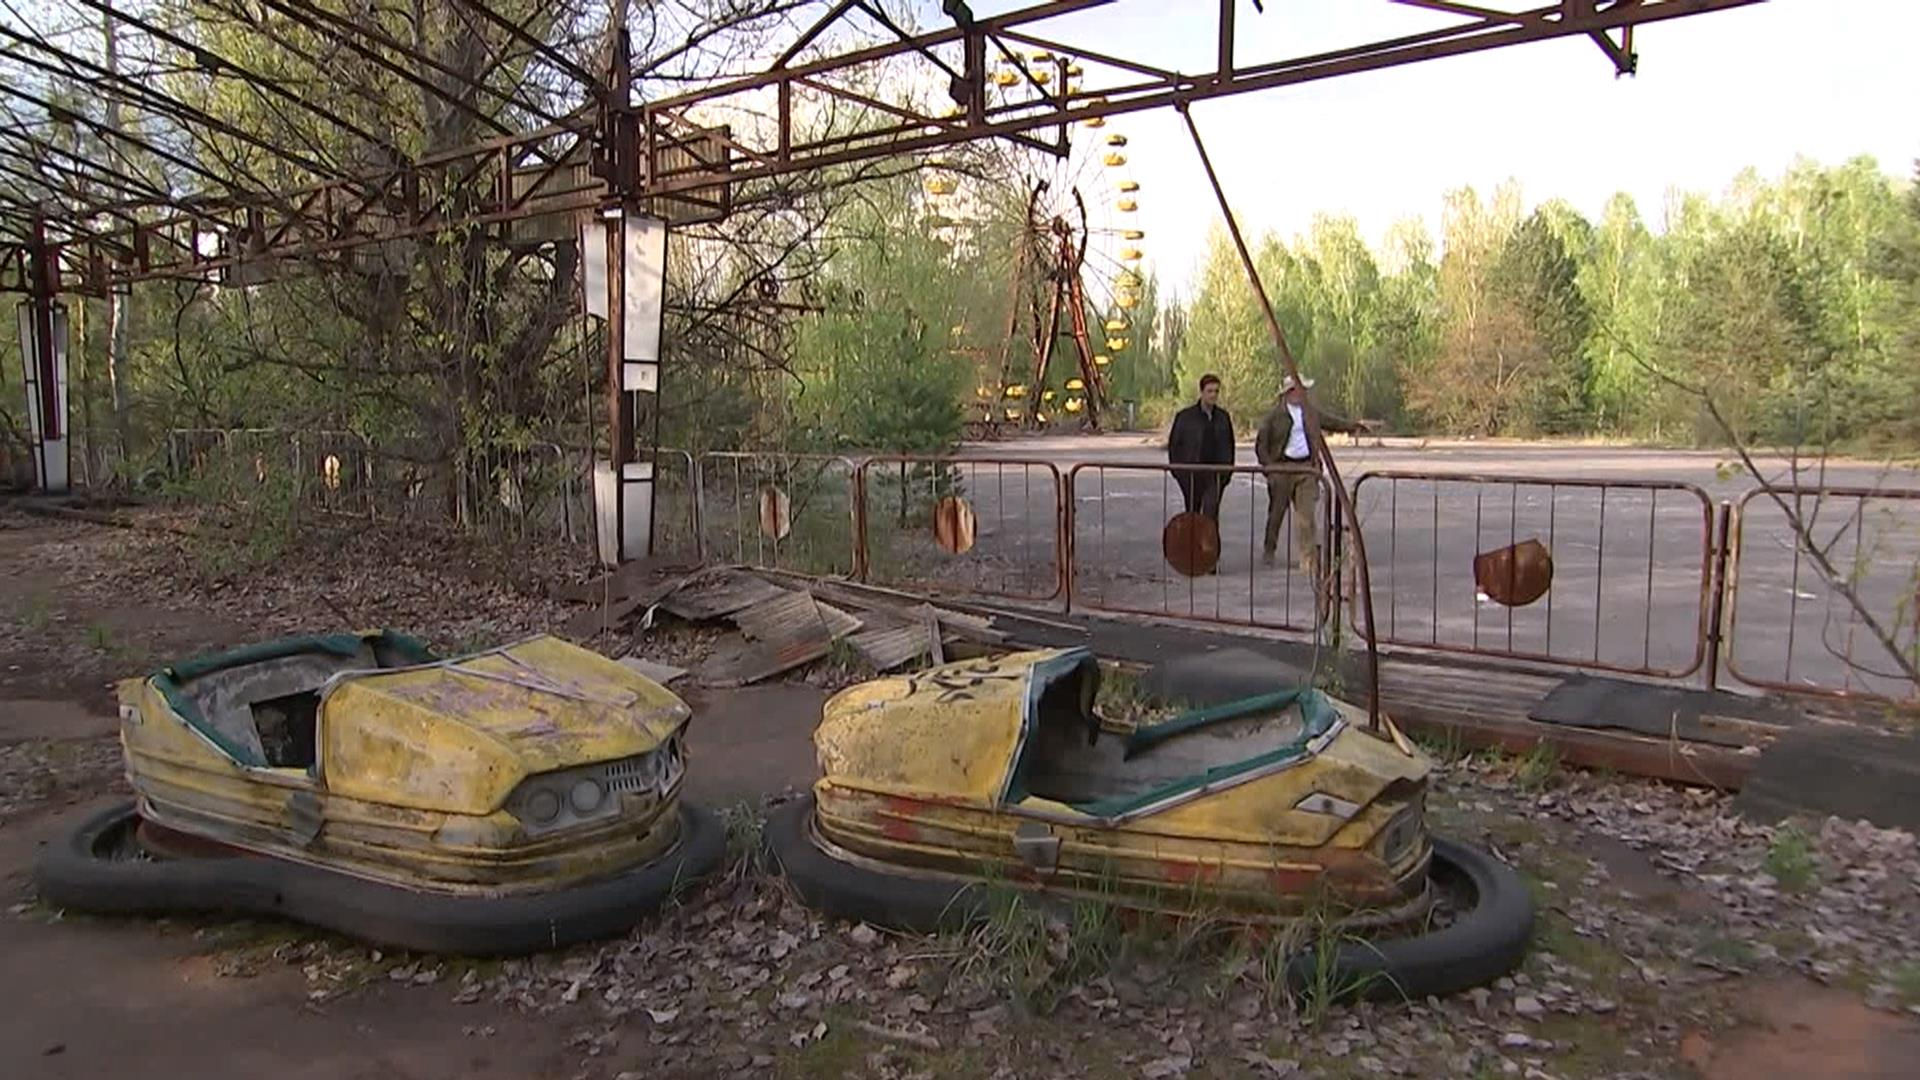 See the eerie scene inside Chernobyl, 30 years after the nuclear disaster